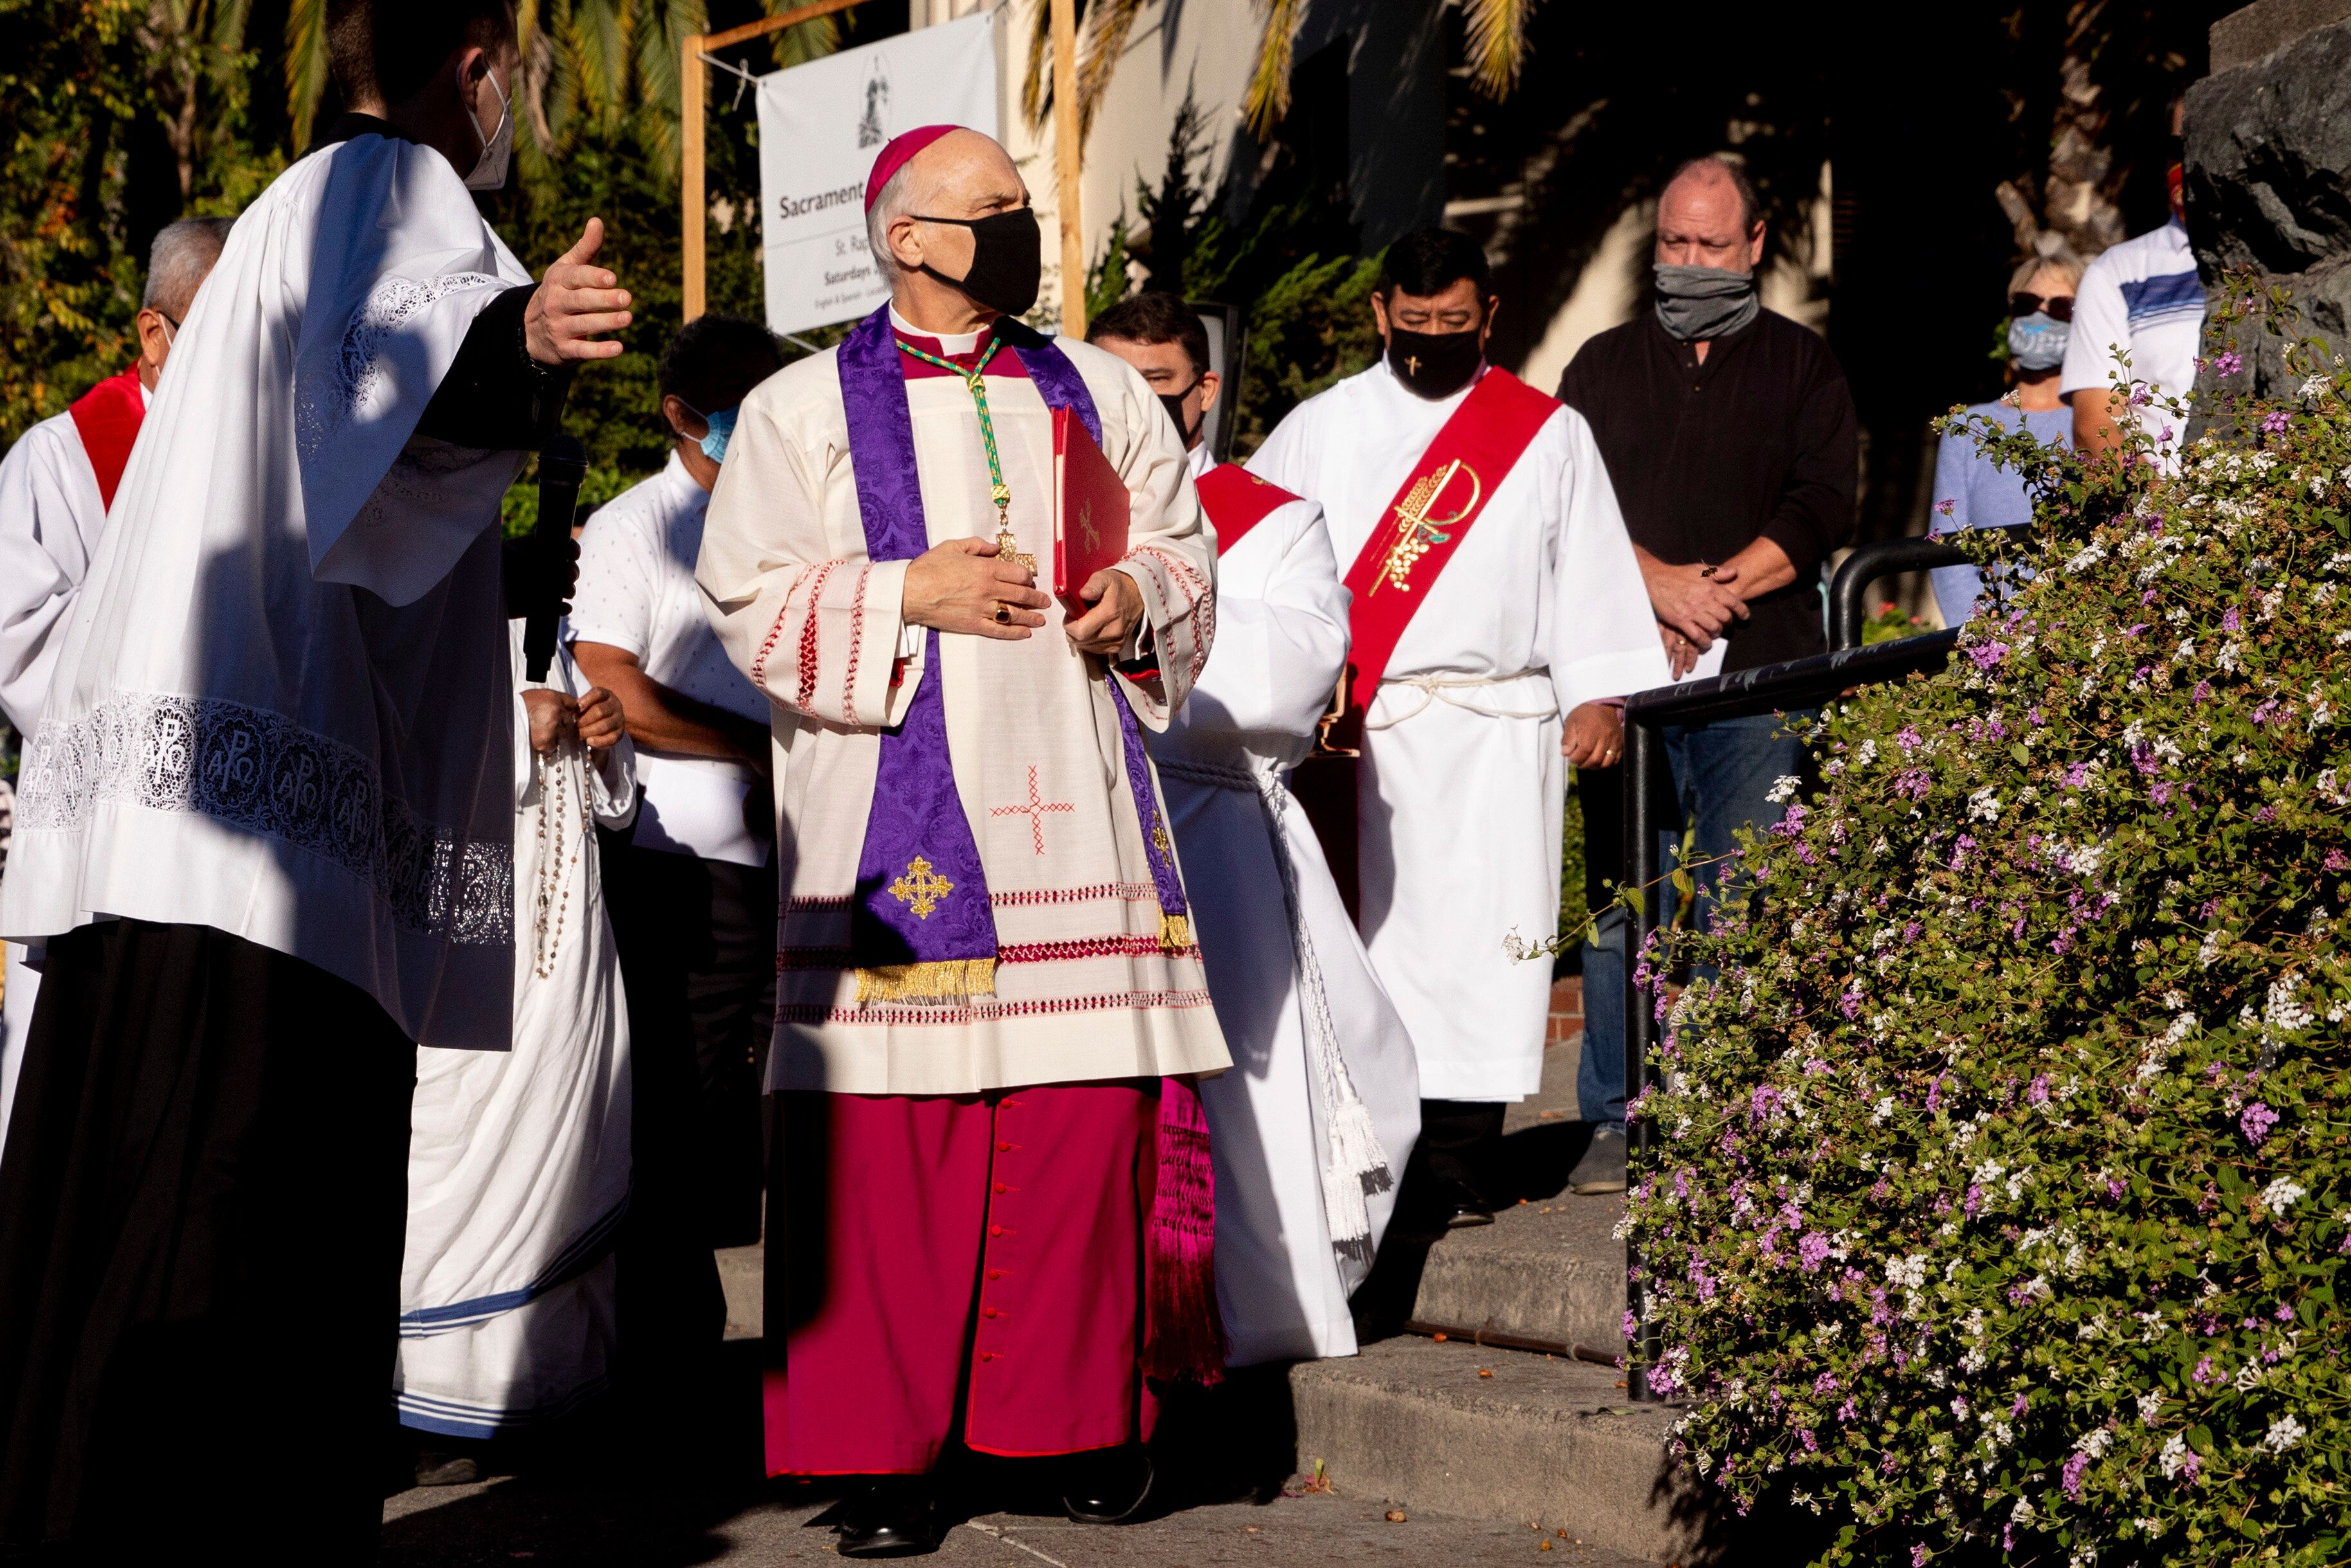 Archbishop Salvatore Cordileone (center) arrives to conduct an exorcism in San Rafael, California, on Oct. 17, 2020, on the s